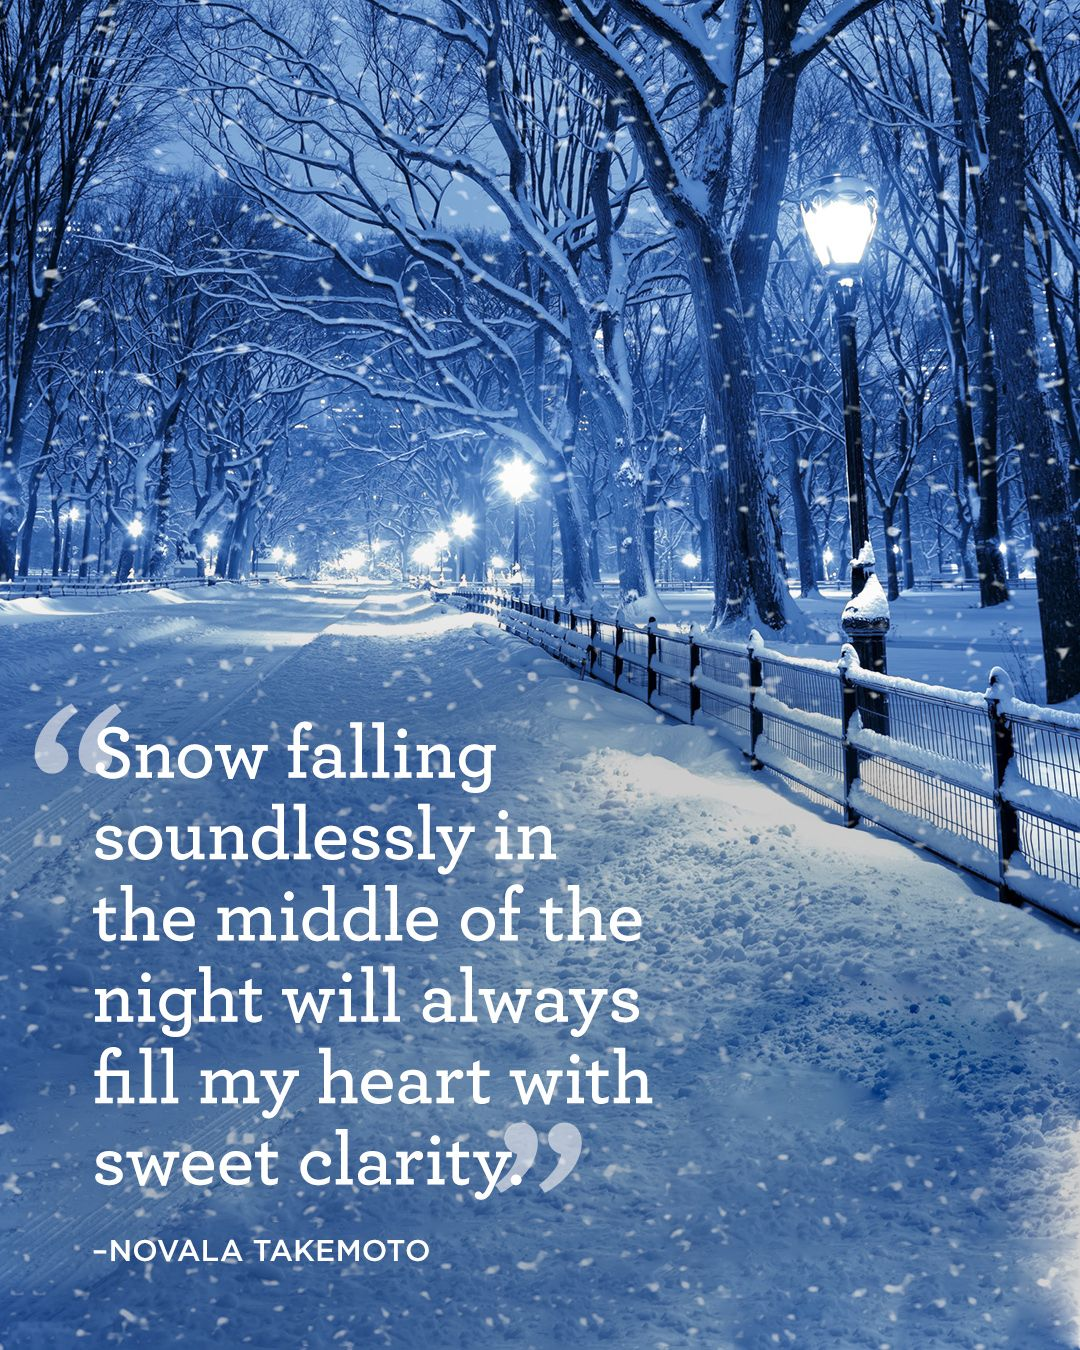 30 Best Winter Quotes to Help You Celebrate the Holiday ...